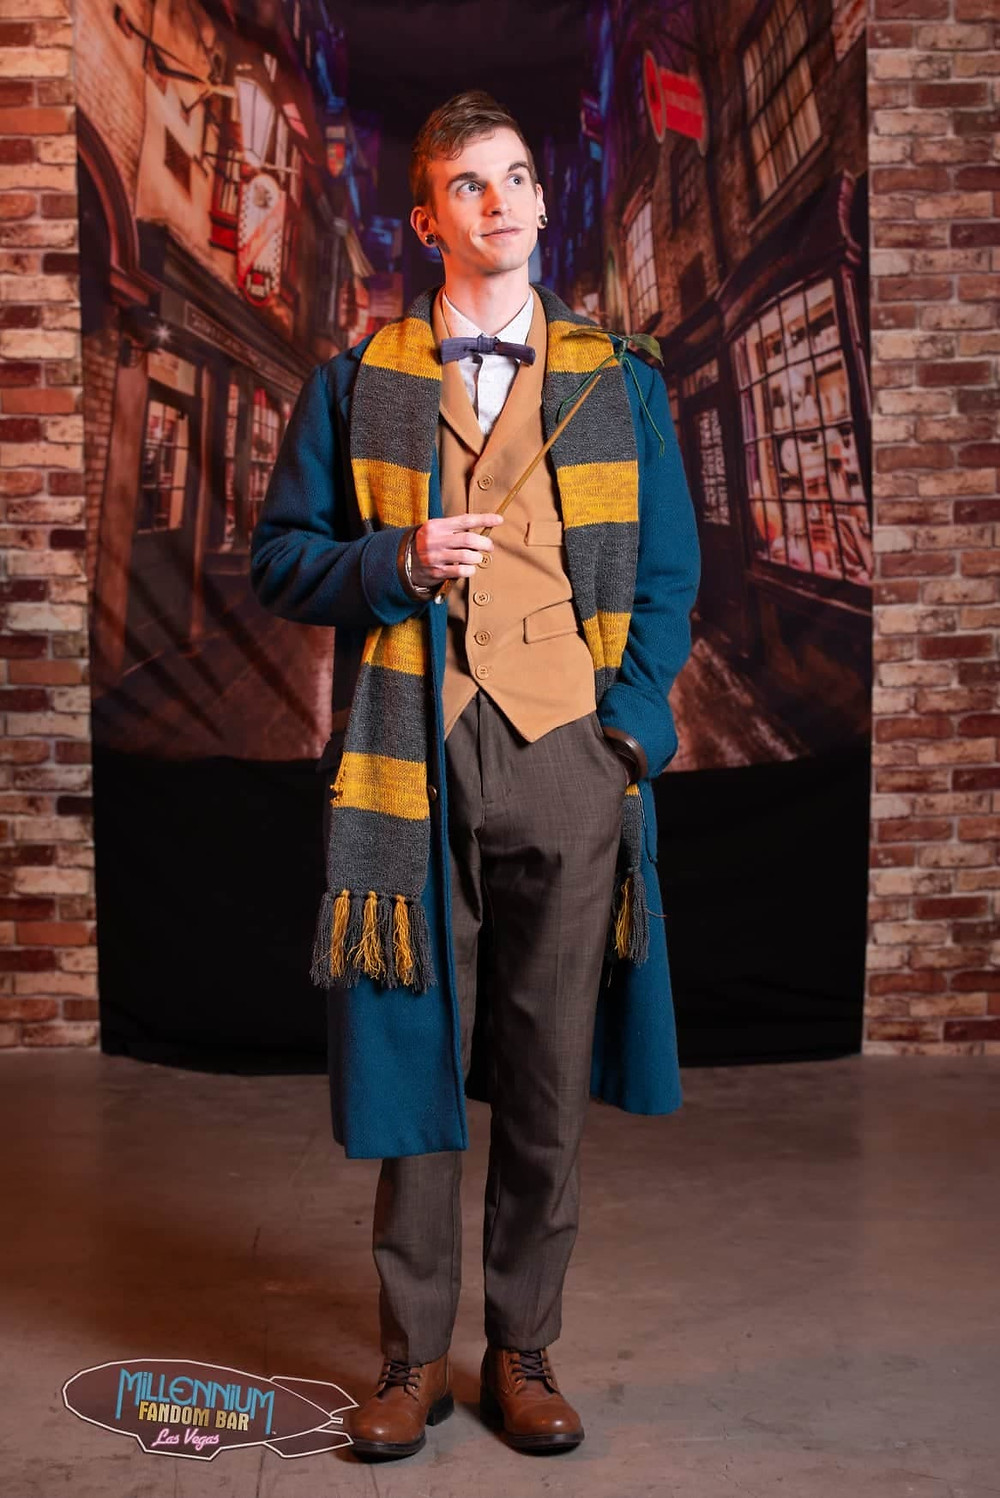 Dylan J Bittner, guest blogger for the fandombar.com Community bLog: Harry Potter's Magical Day of Birth!